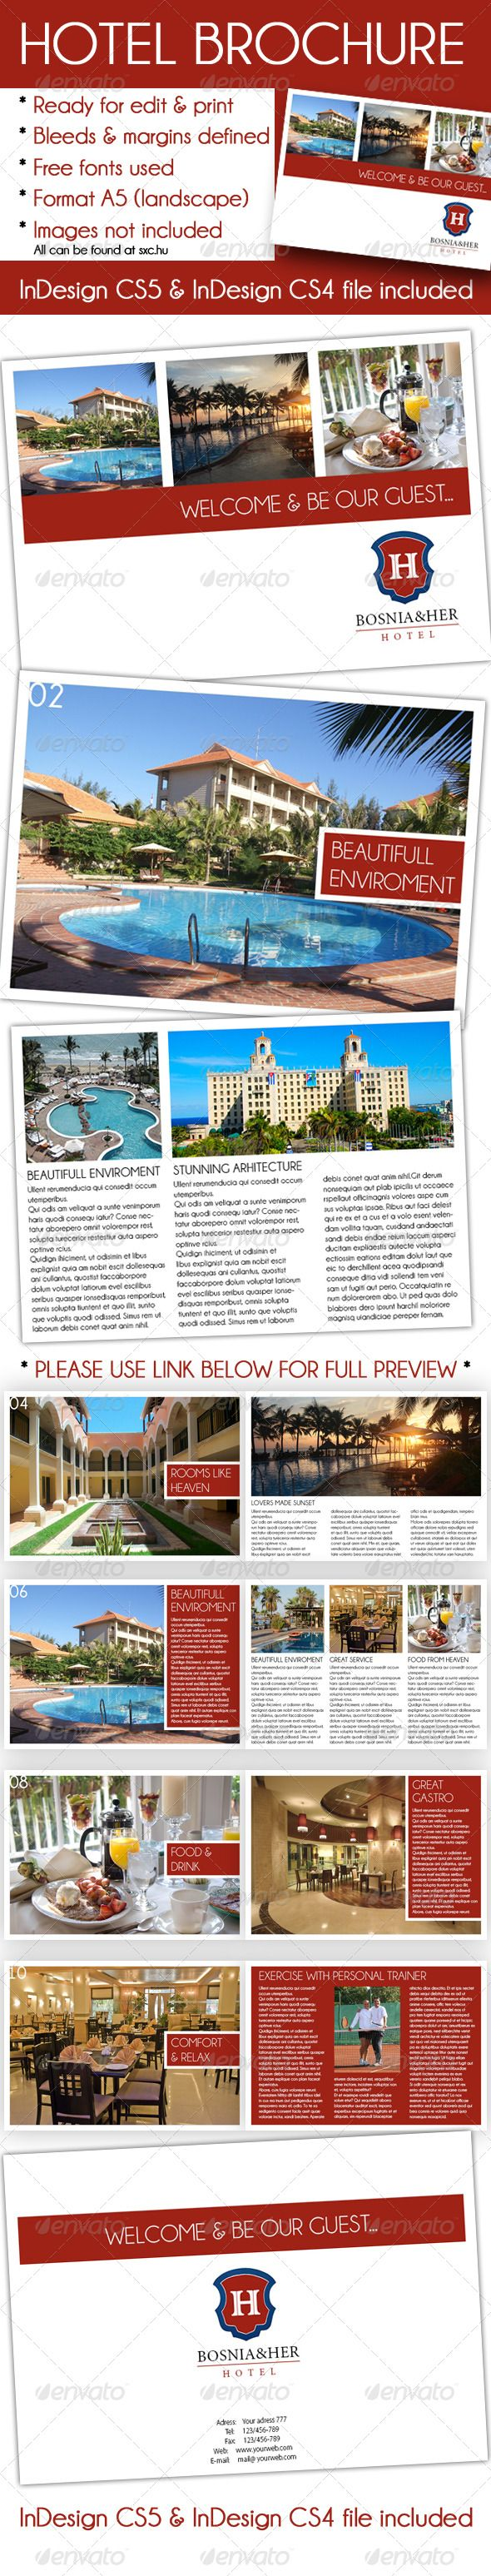 Elegant hotel brochure a5 indesign template hotel for Free indesign brochure templates cs5